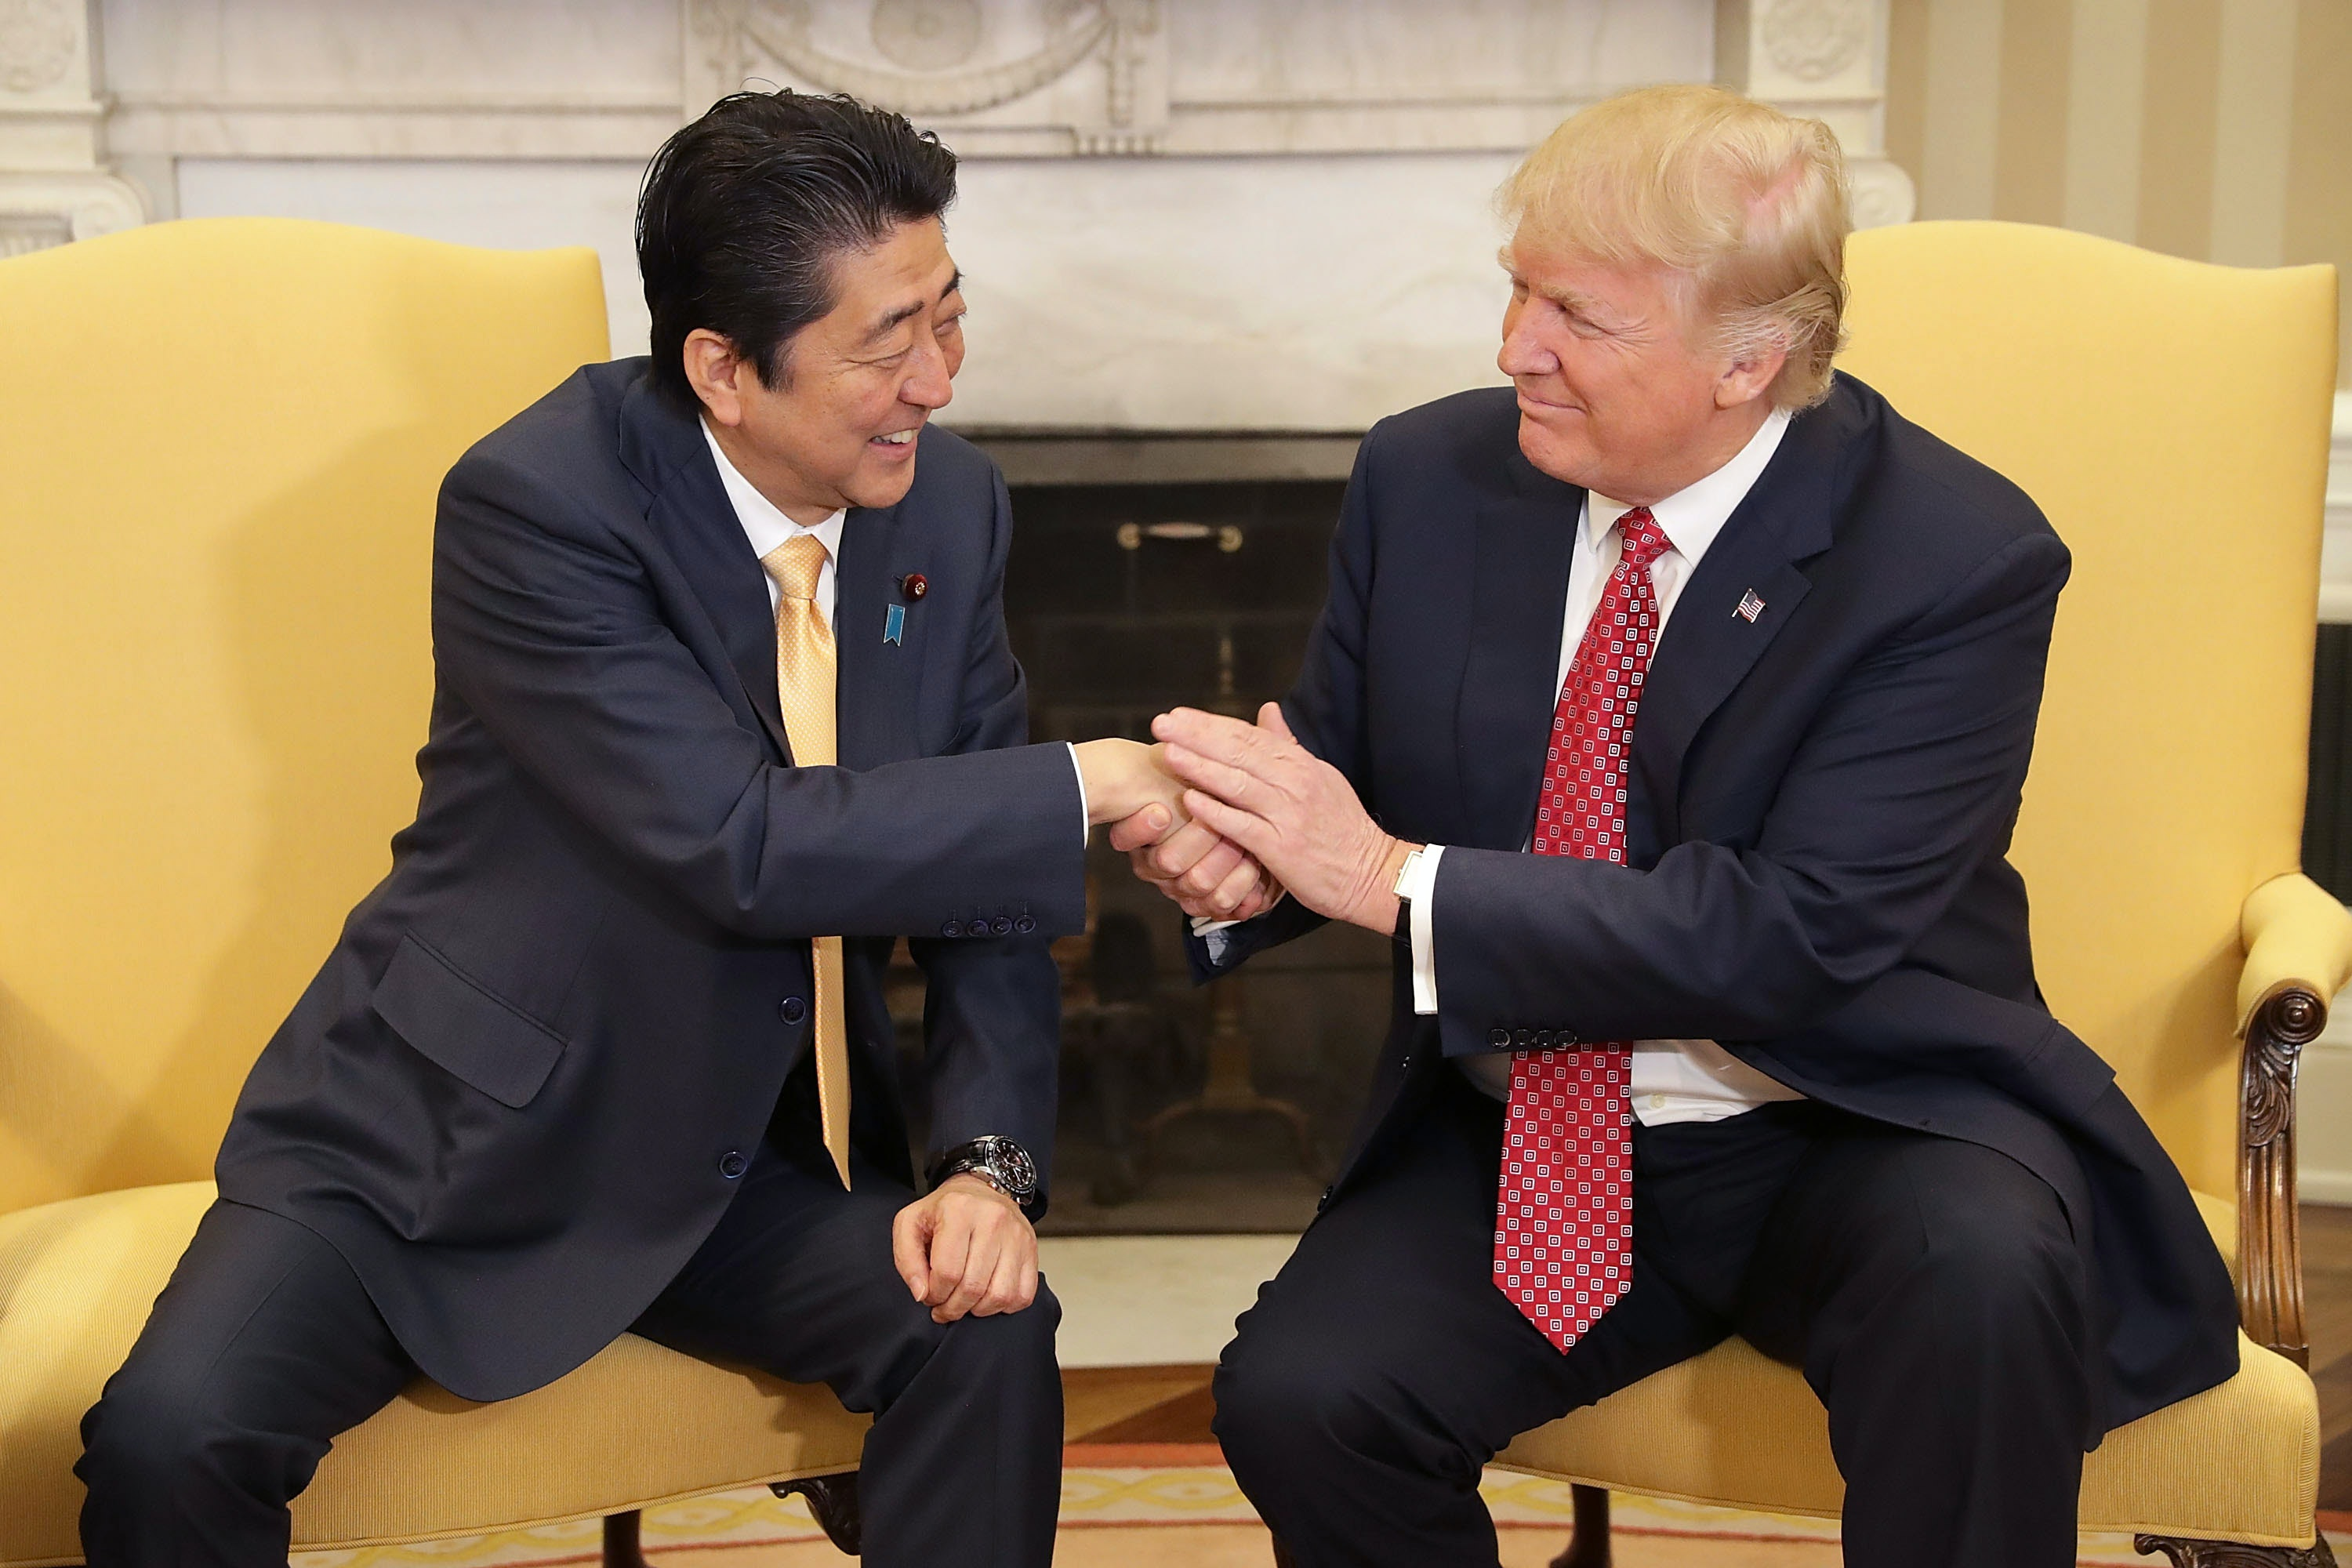 Shinzo Abes Facial Expression After Shaking Hands With Trump Will